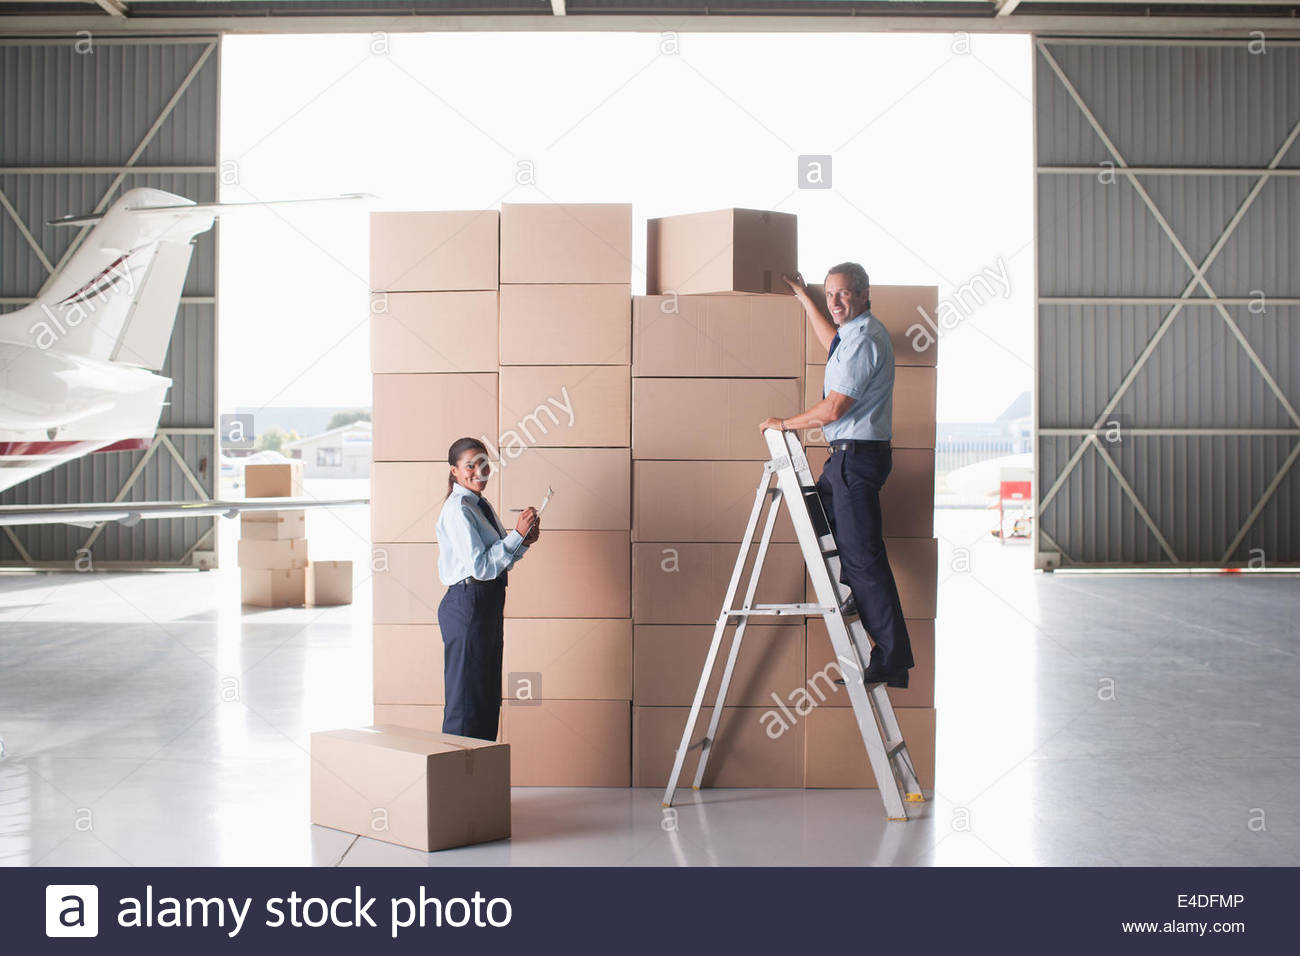 Workers stacking cardboard boxes in hangar - Stock Image